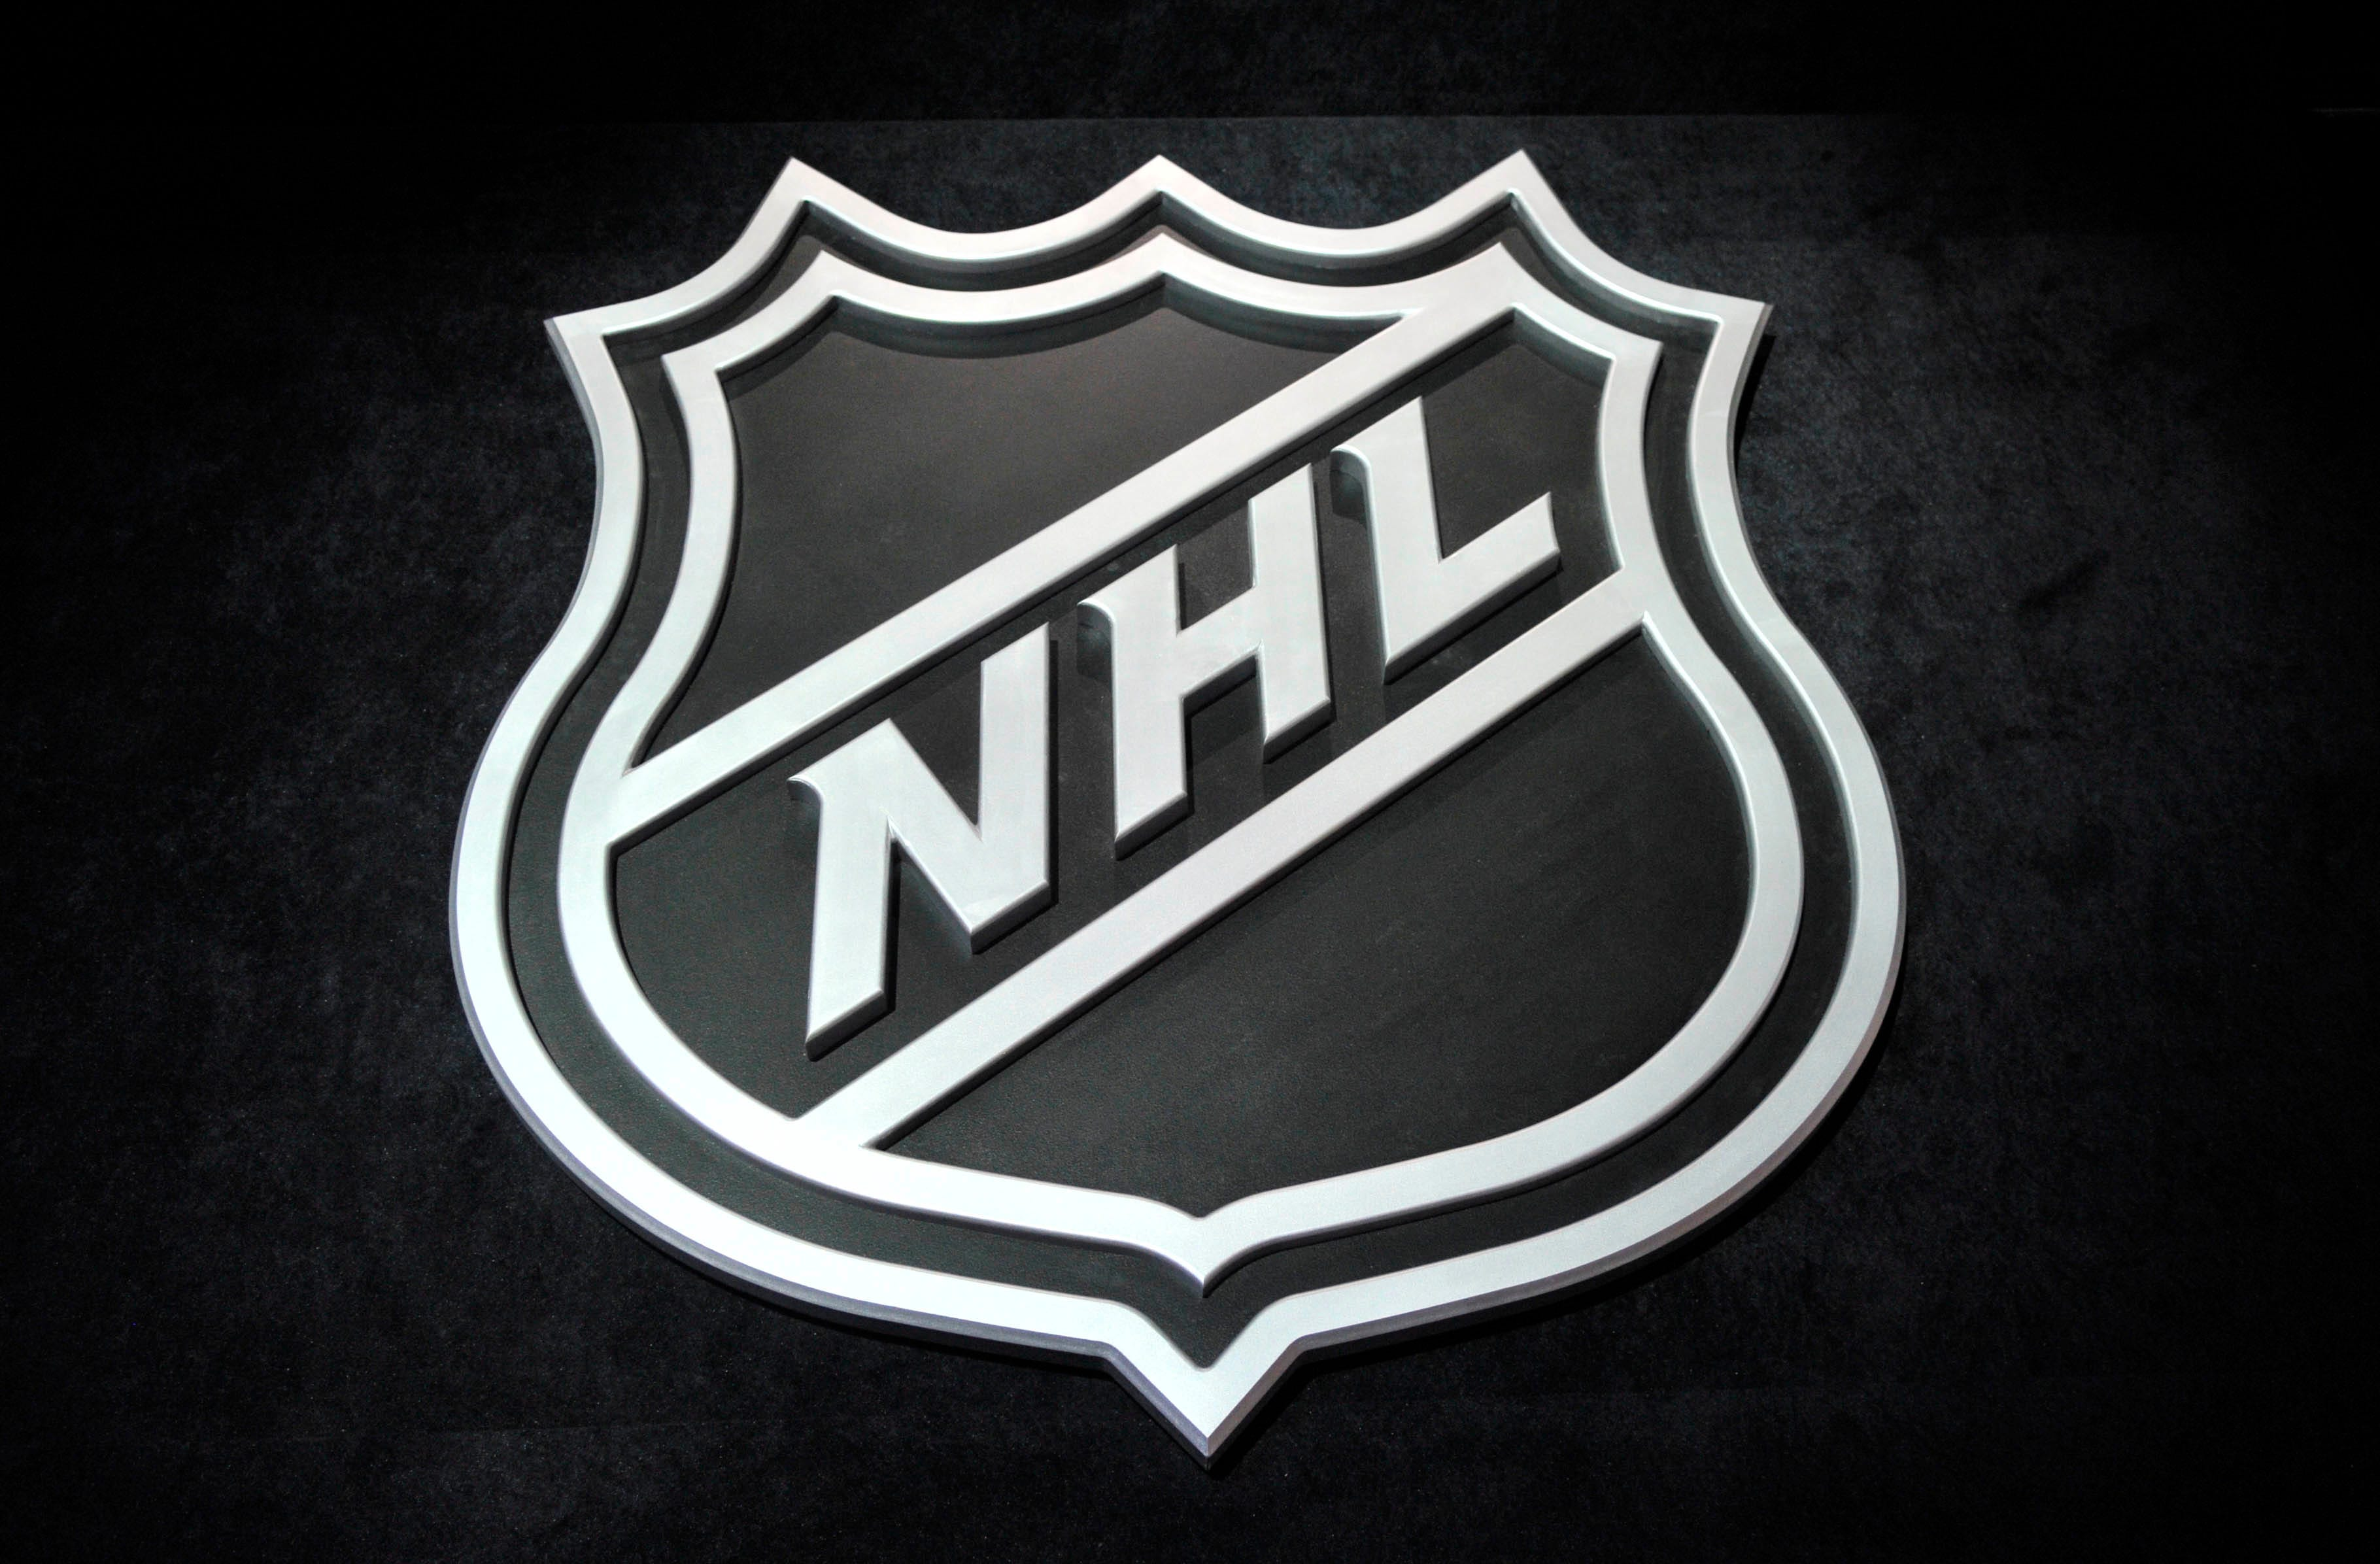 Meldonium banned for use among hockey players of the NHL